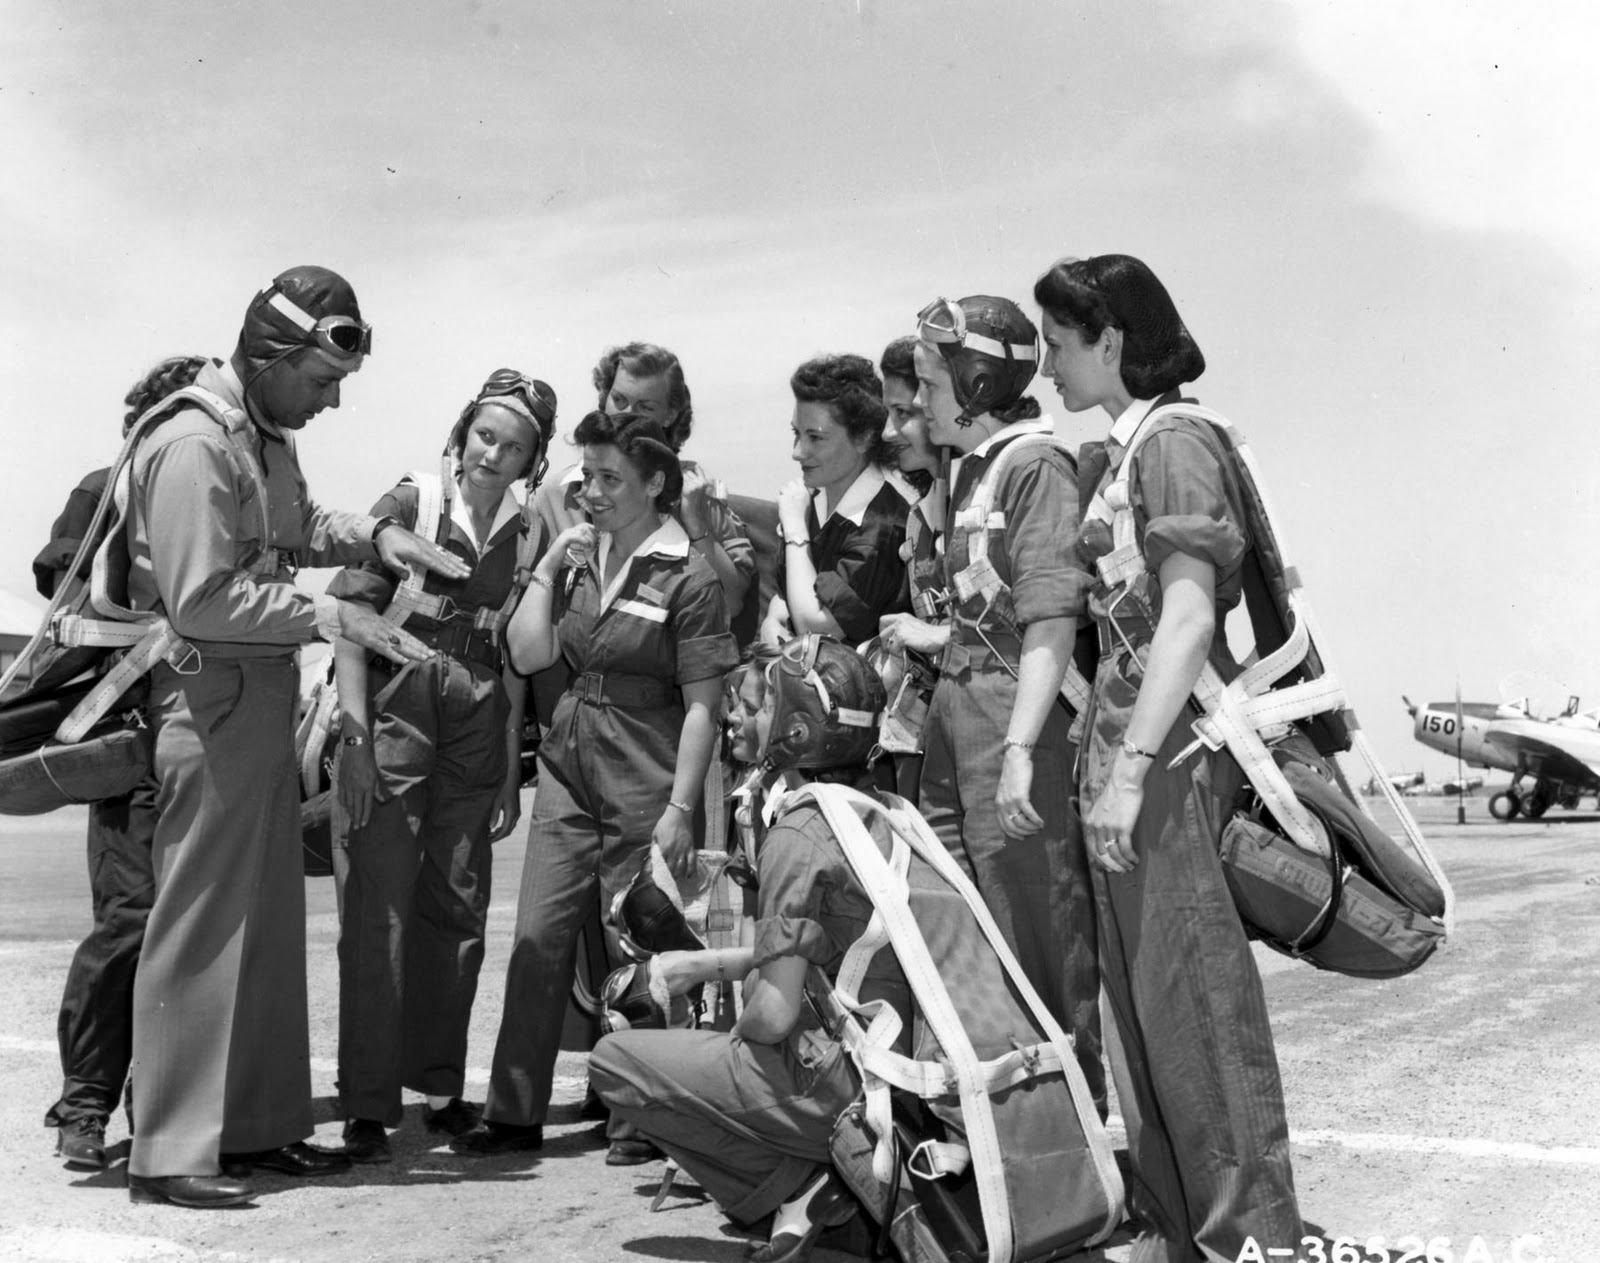 womens american service pilots wasps history essay It would be decades before the women of wasp would finally get their due  america's entry into world war ii following the attack on pearl harbor  base on  sundays for religious services and operated test flights for repaired aircraft to  make  and now it seemed like the government was wiping them from history  completely.